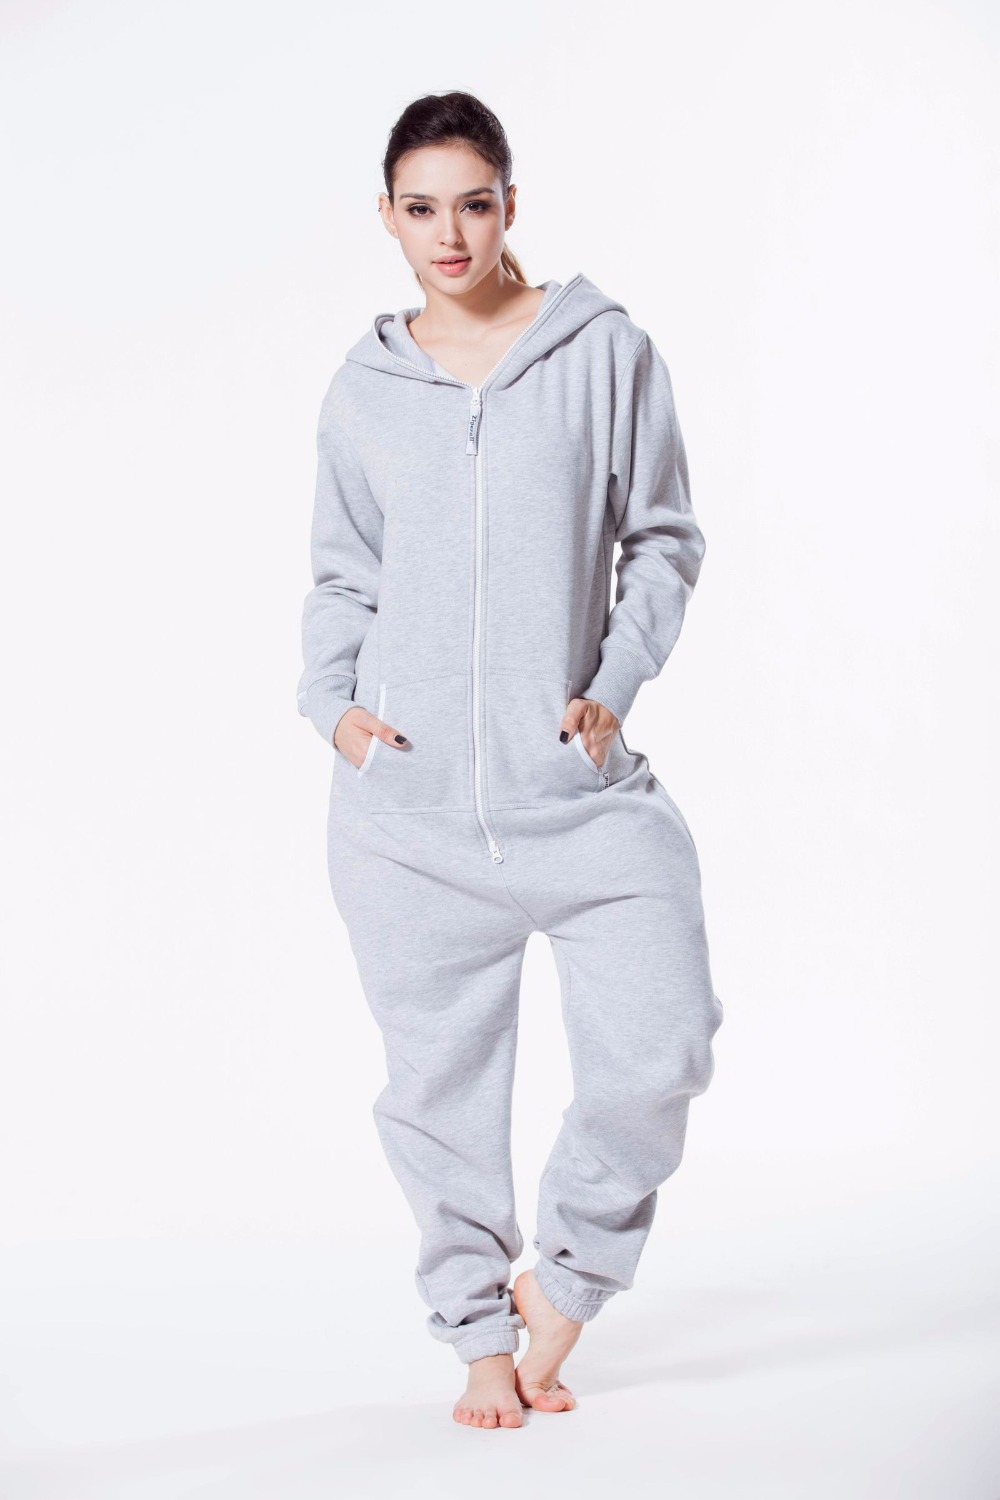 Zipperall One Piece Jumpsuit Unisex Adult Romper Hoody Fleece Playsuit All In Onzie Overall